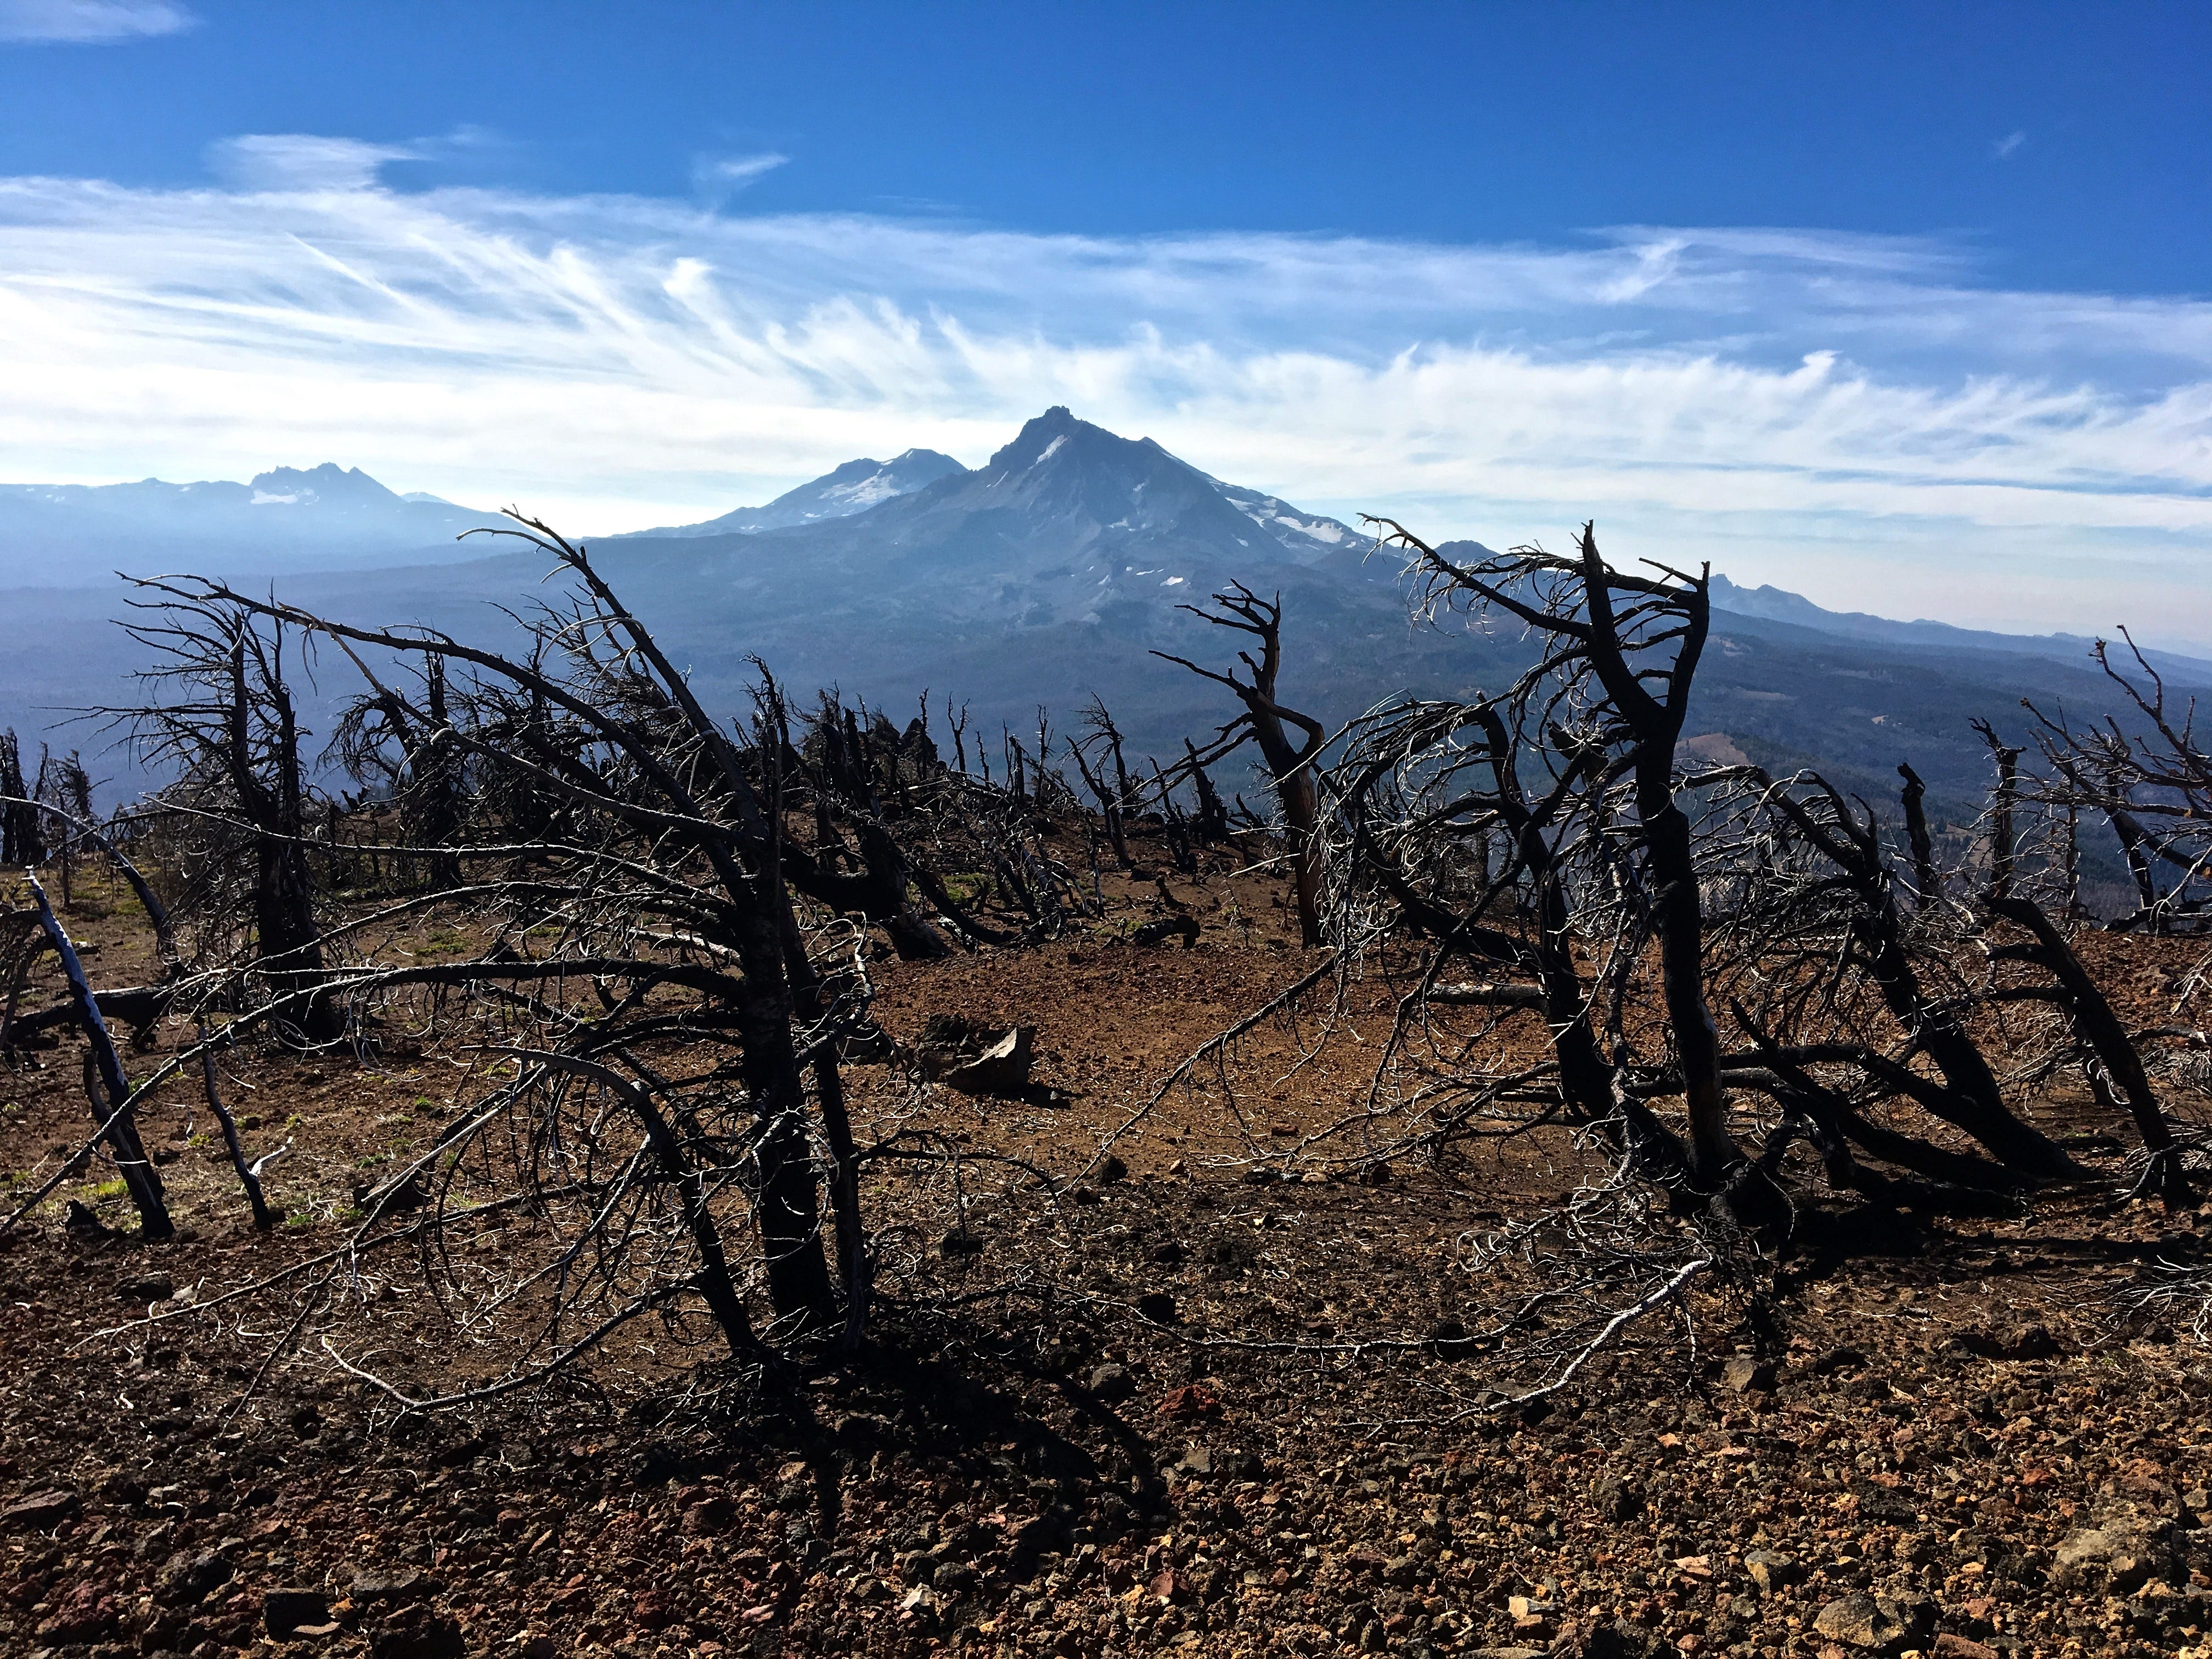 View of North and Middle Sister from top of Black Crater where the 2017 Milli Fire burned.